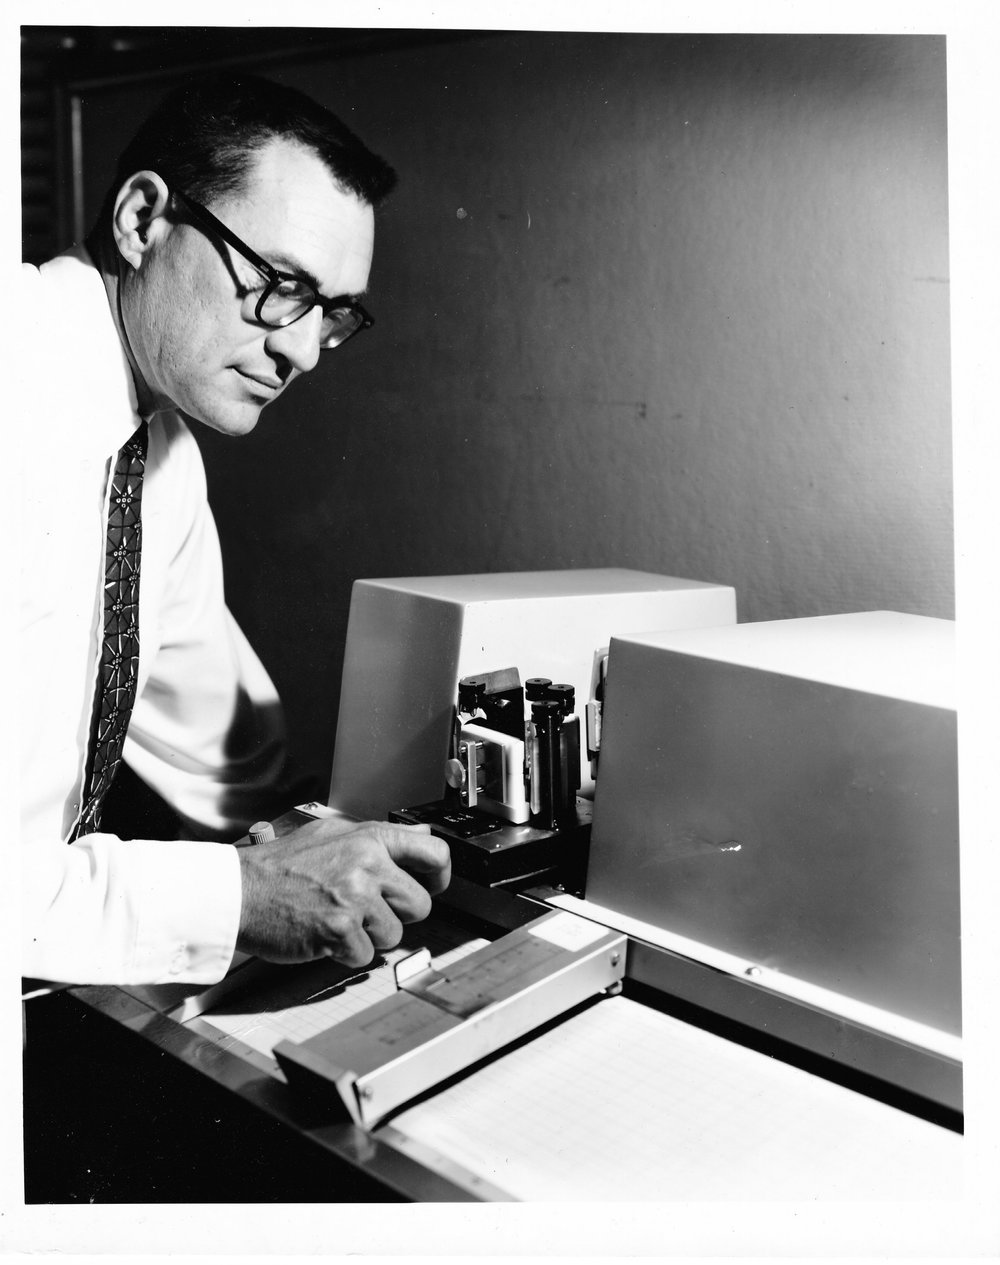 Paul Wilks, c. 1957, with one of his mid-infrared analyzers.